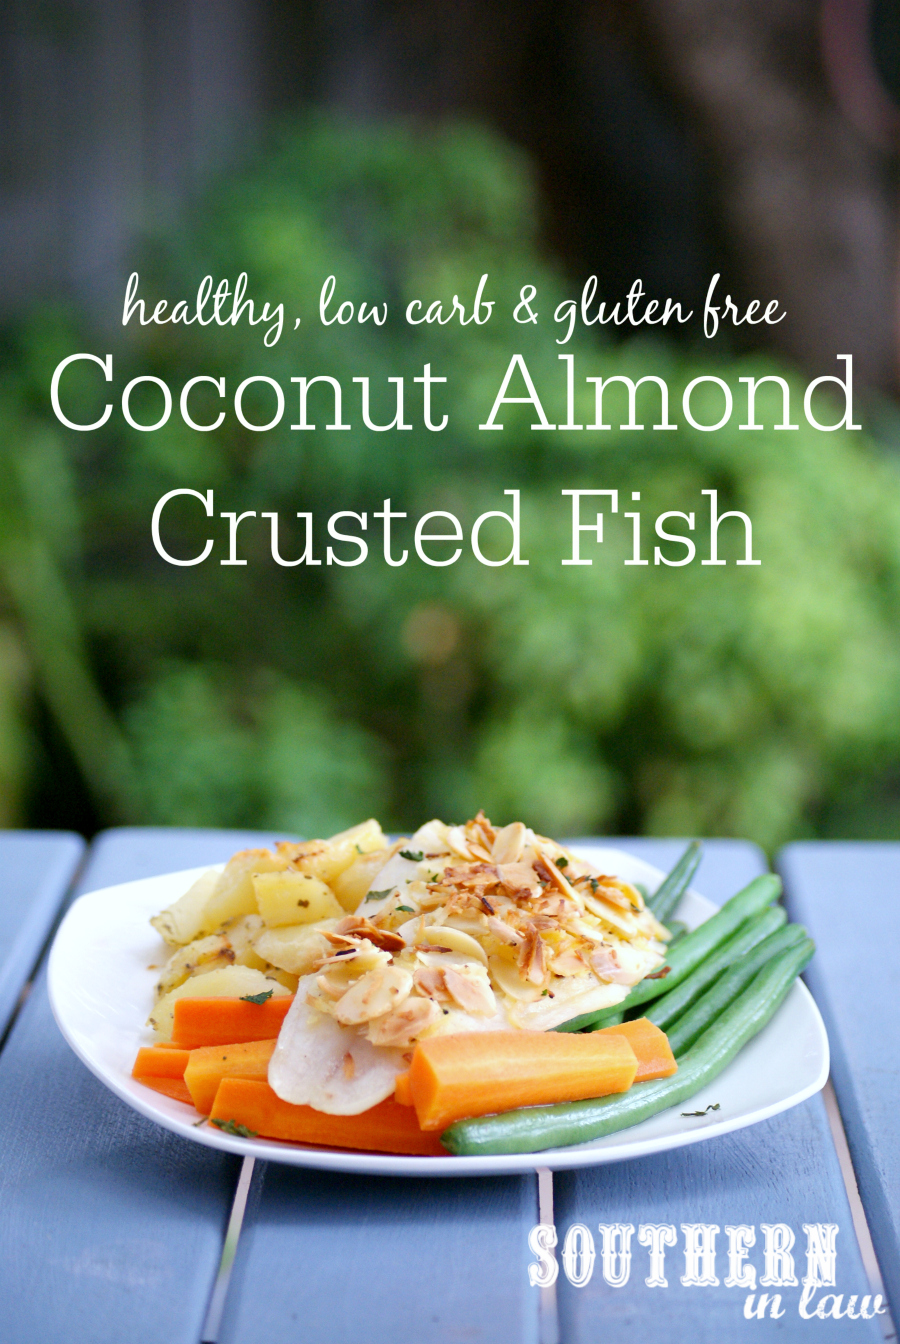 picture Healthified Almond-Crusted Fish